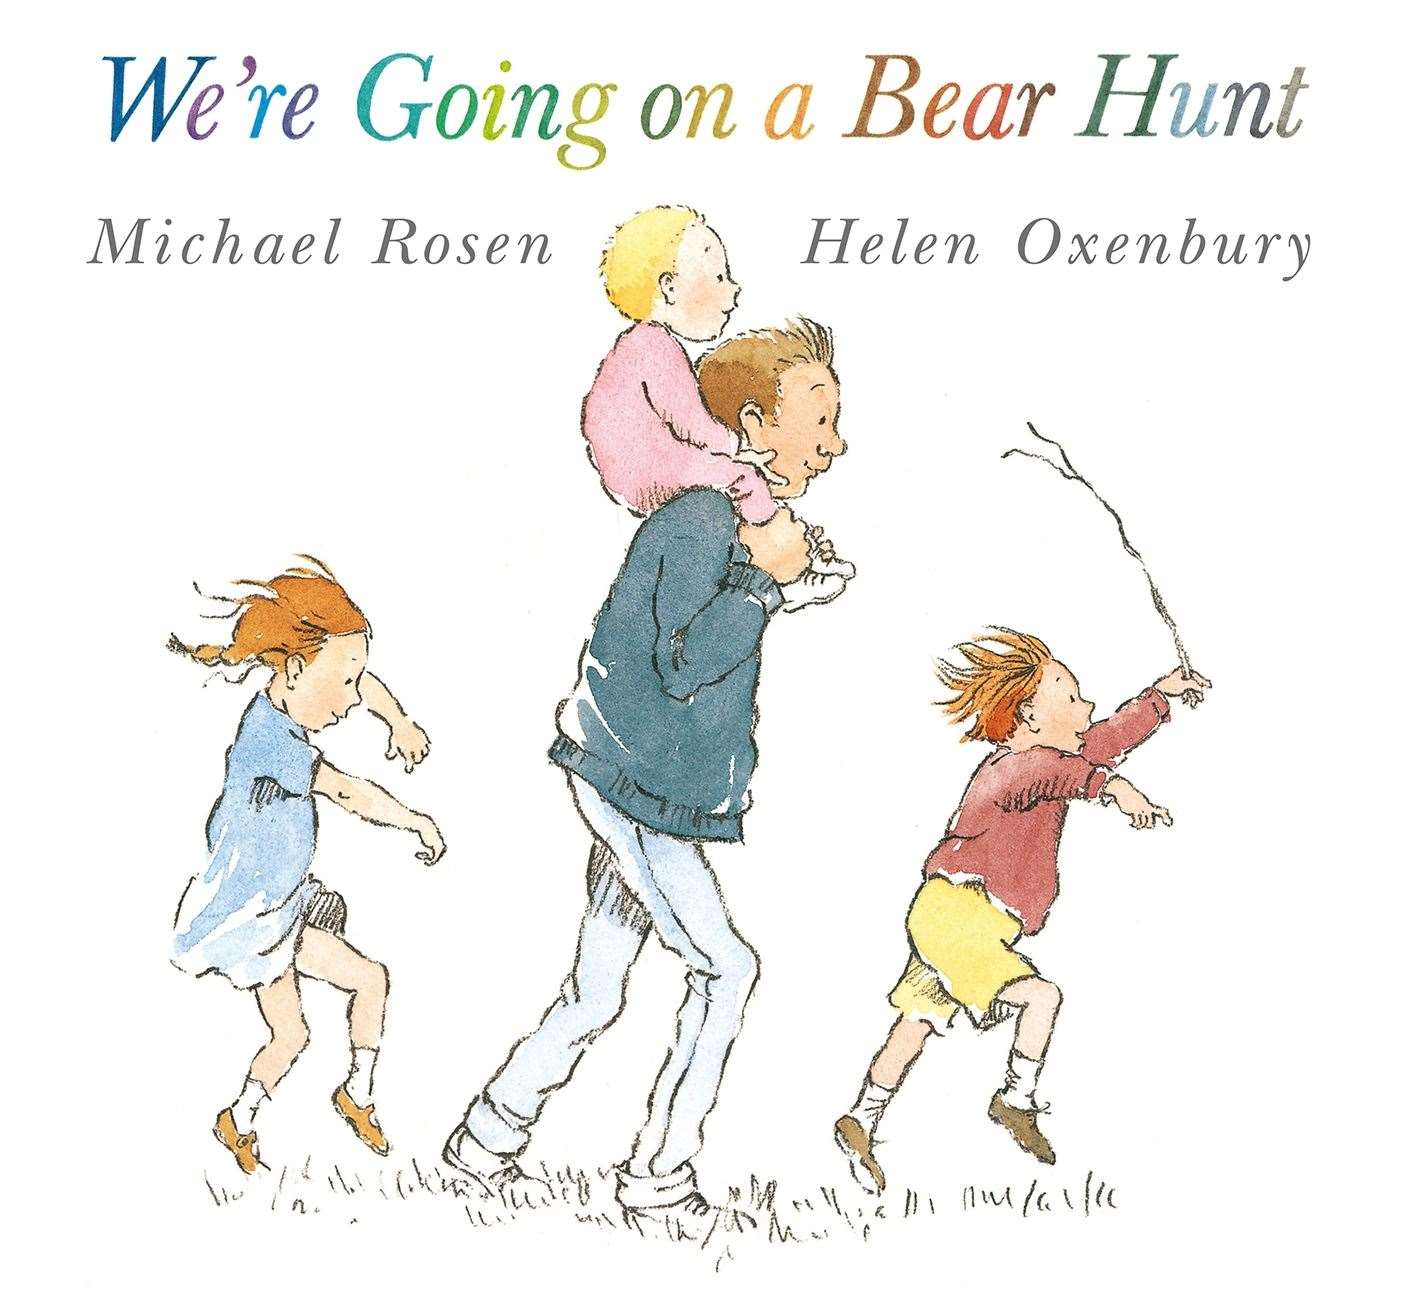 We're Going On A Bear Hunt by Michael Rosen and Helen Oxenbury (39035245)